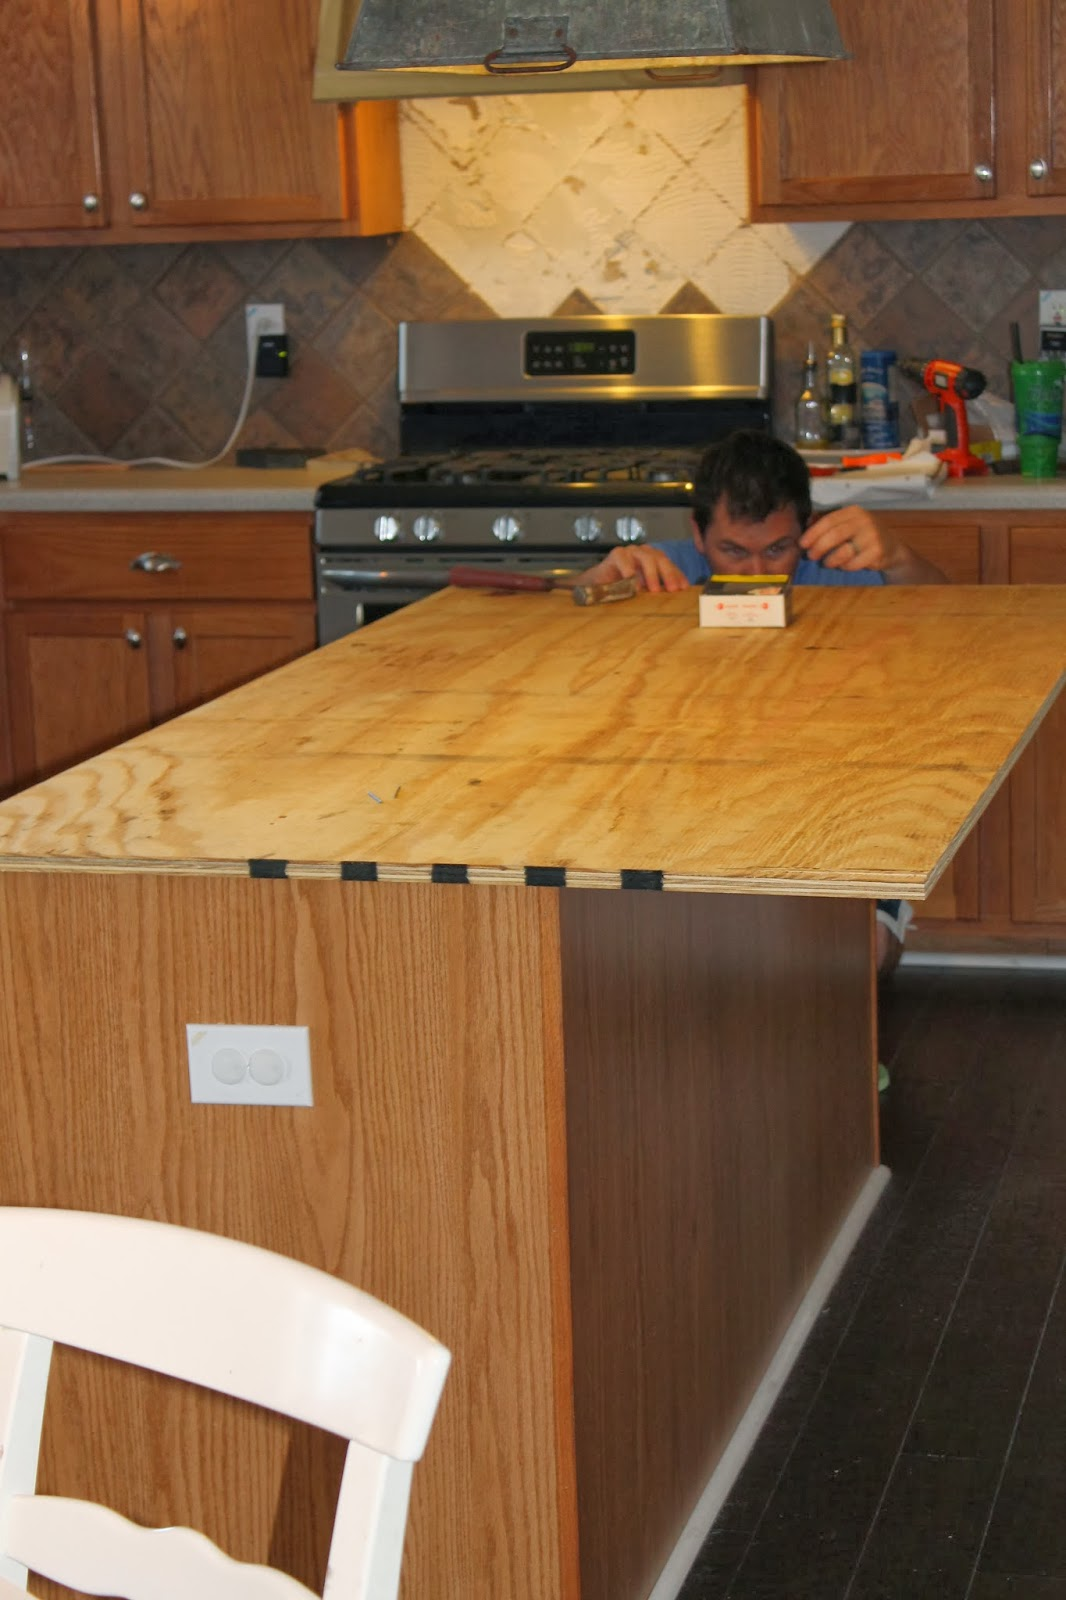 Best Kitchen Gallery: Remodelaholic How To Create Faux Reclaimed Wood Countertops of 2x4 Kitchen Counter on rachelxblog.com